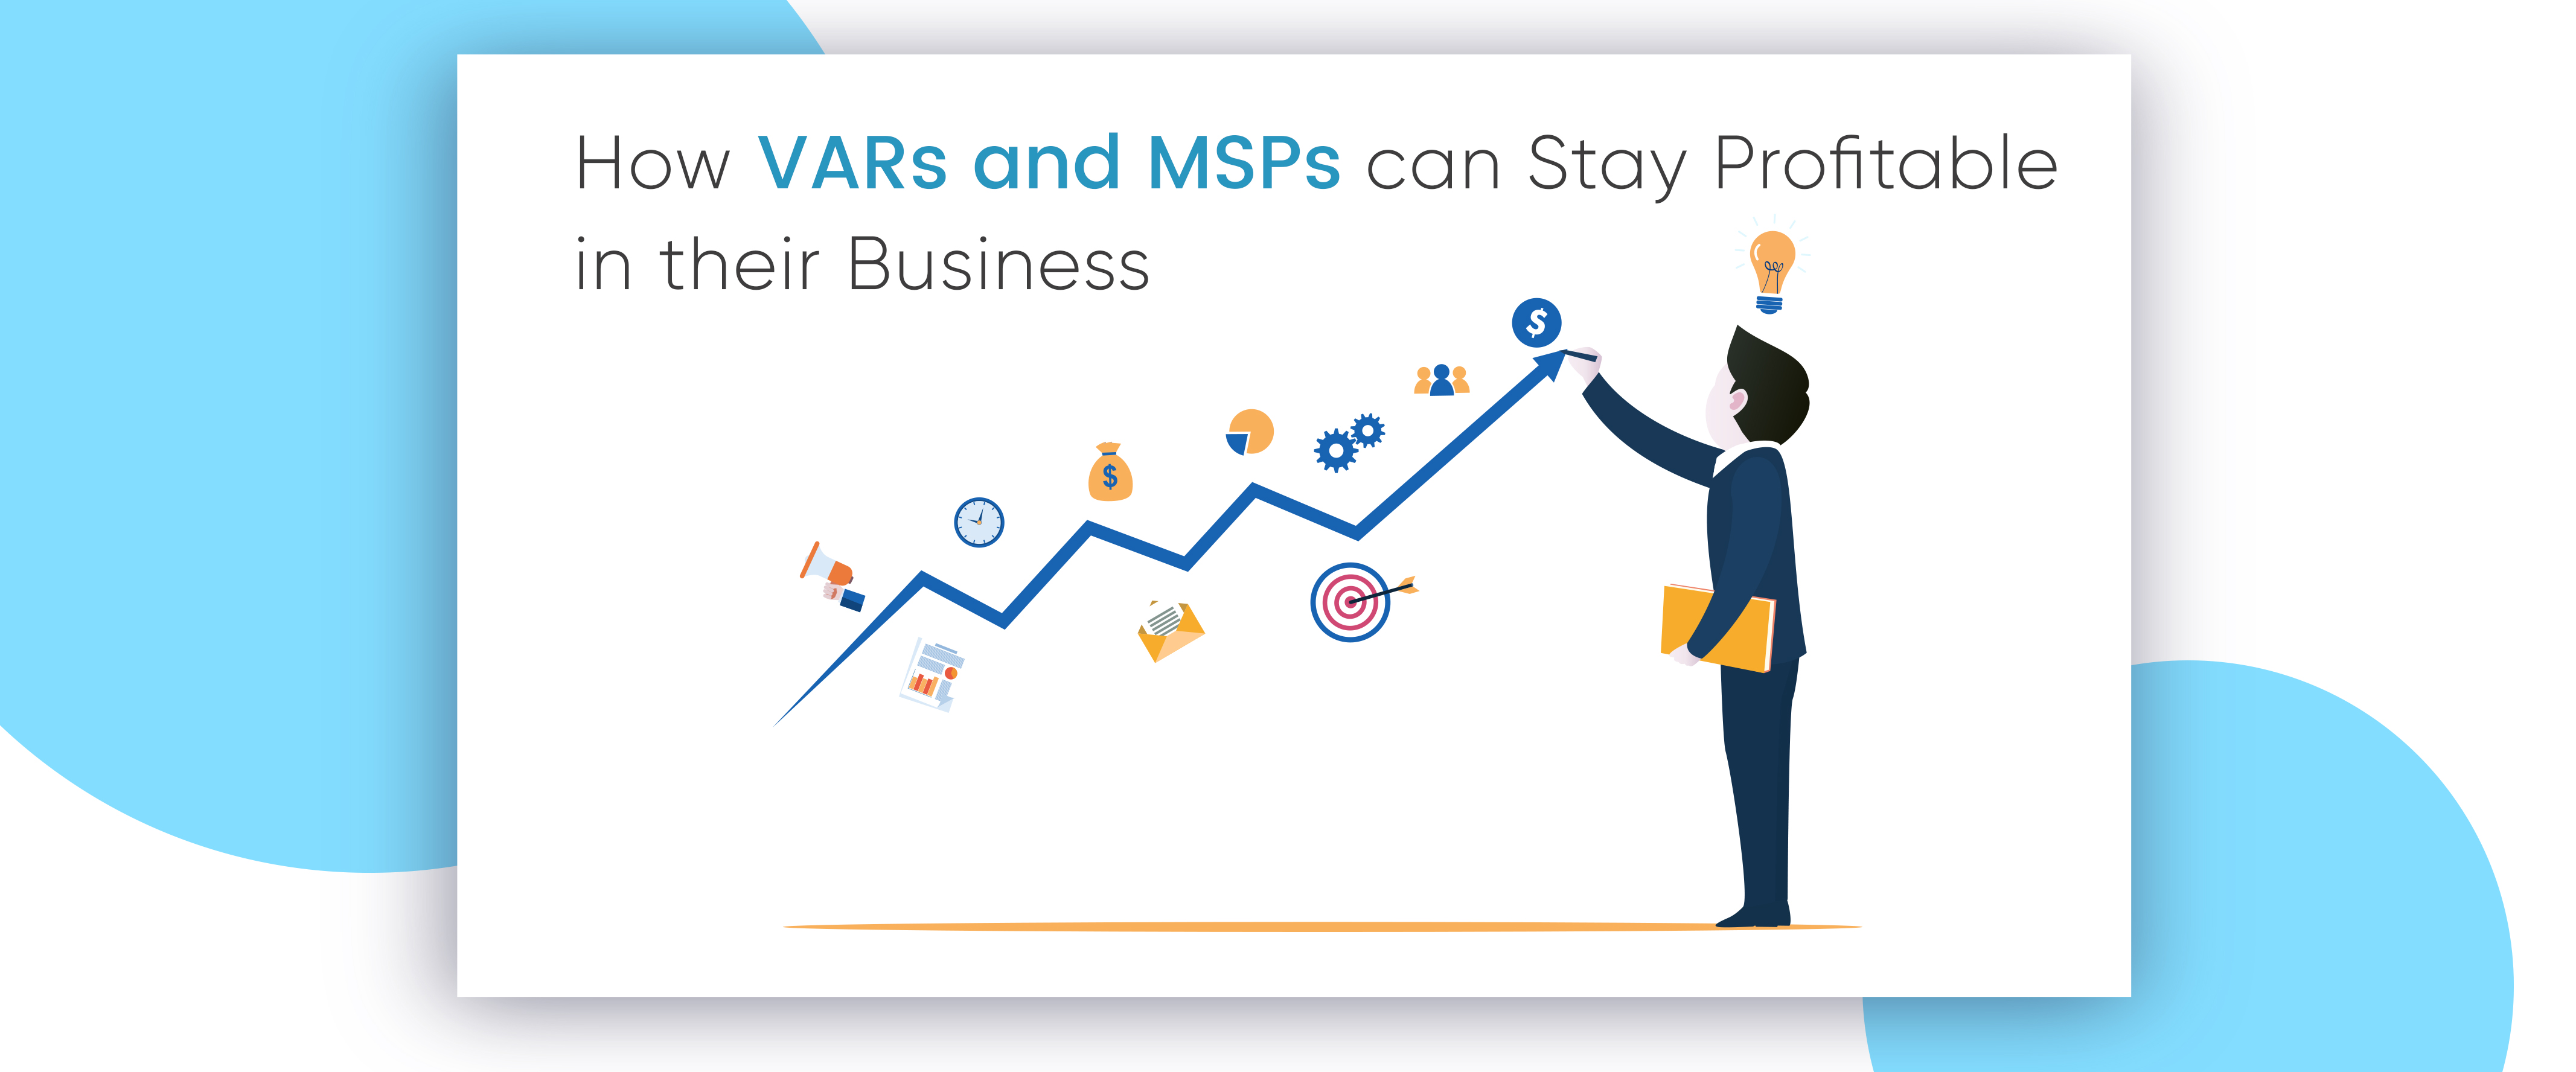 How VARs and MSPs can Stay Profitable in their Business